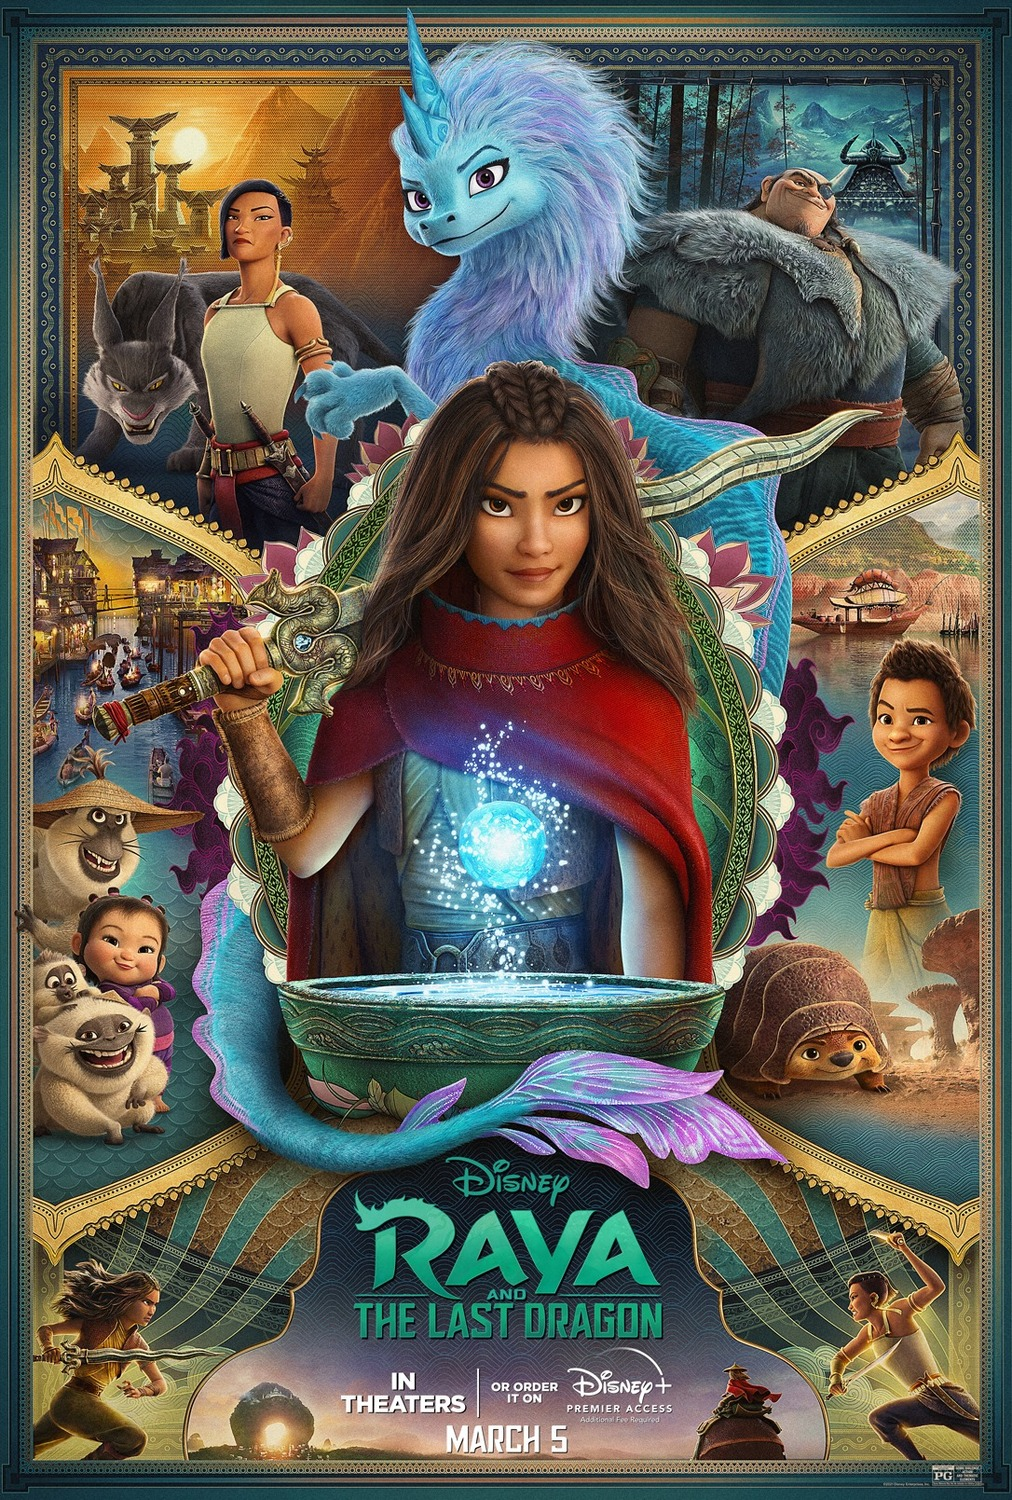 New movies in theaters - Raya and the Last Dragon and more ...